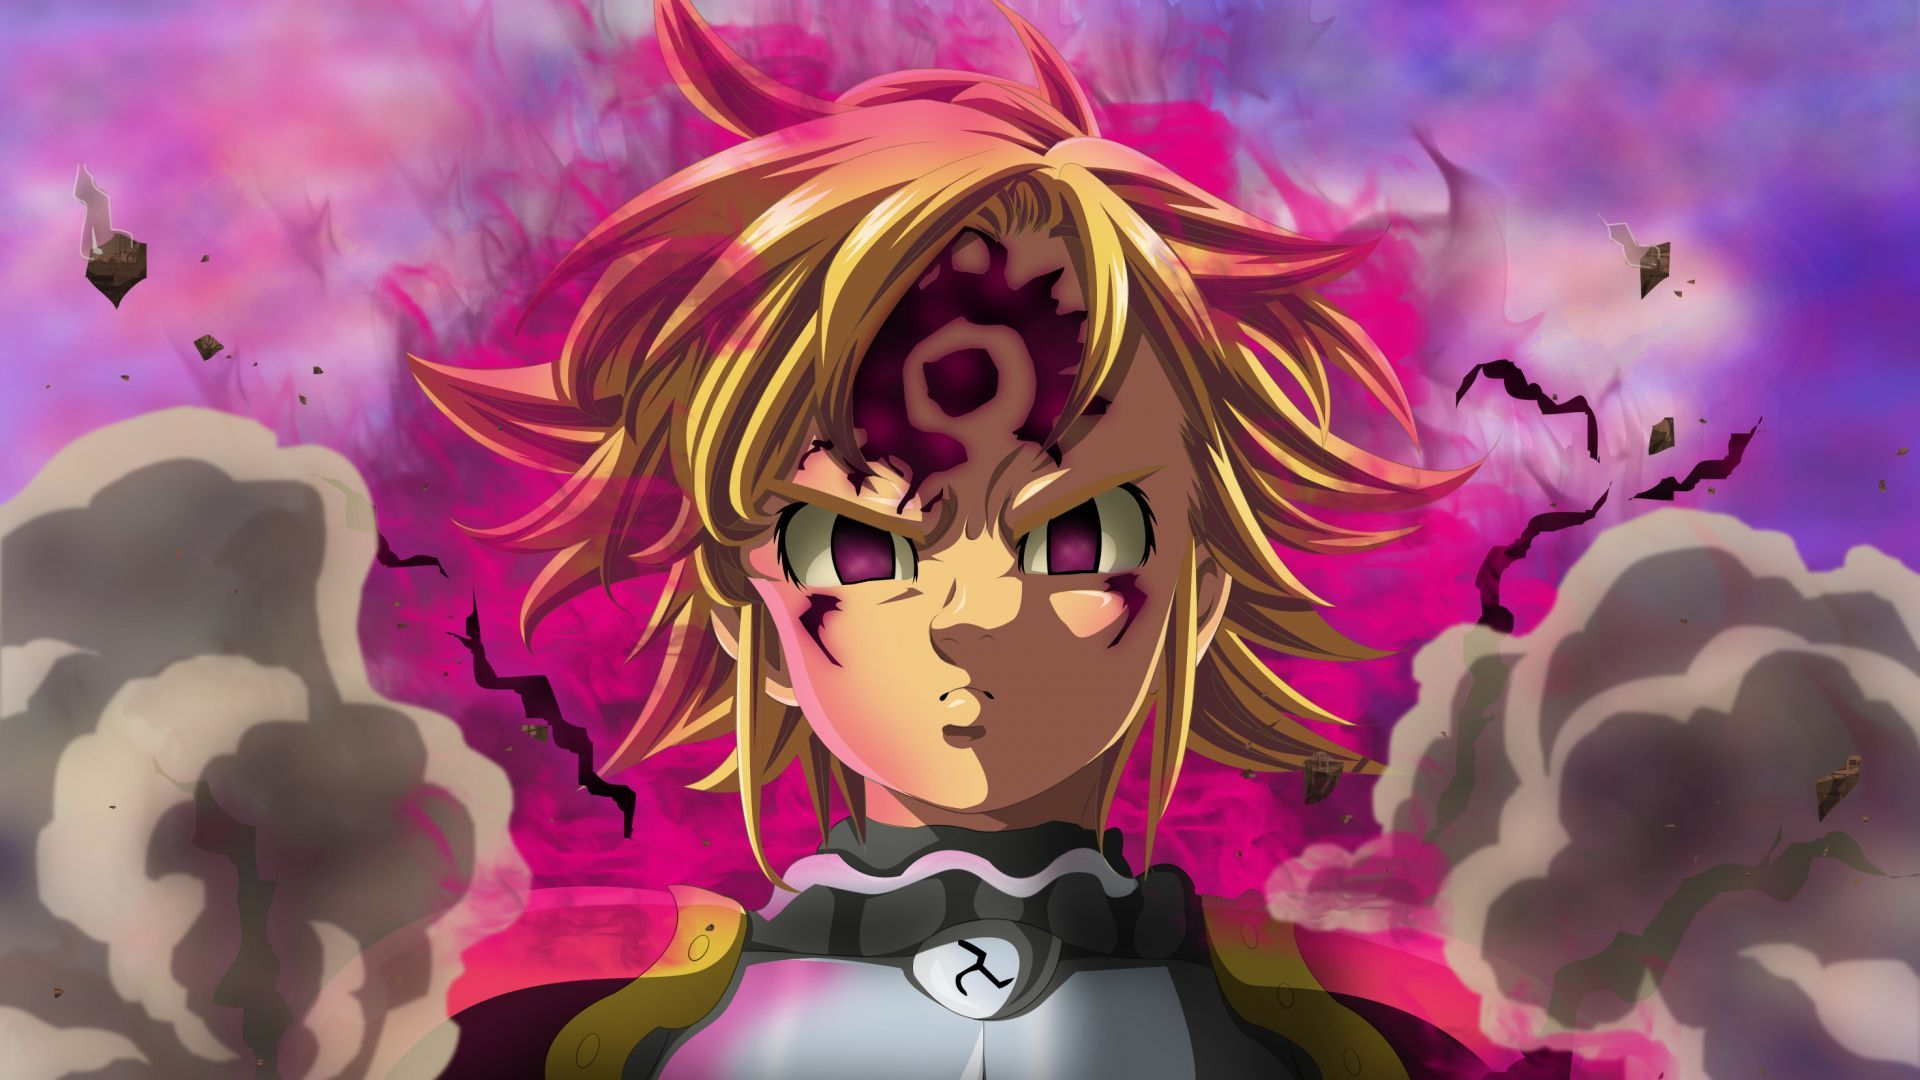 Download Wallpapers Of Meliodas Seven Deadly Sins Anime 12727